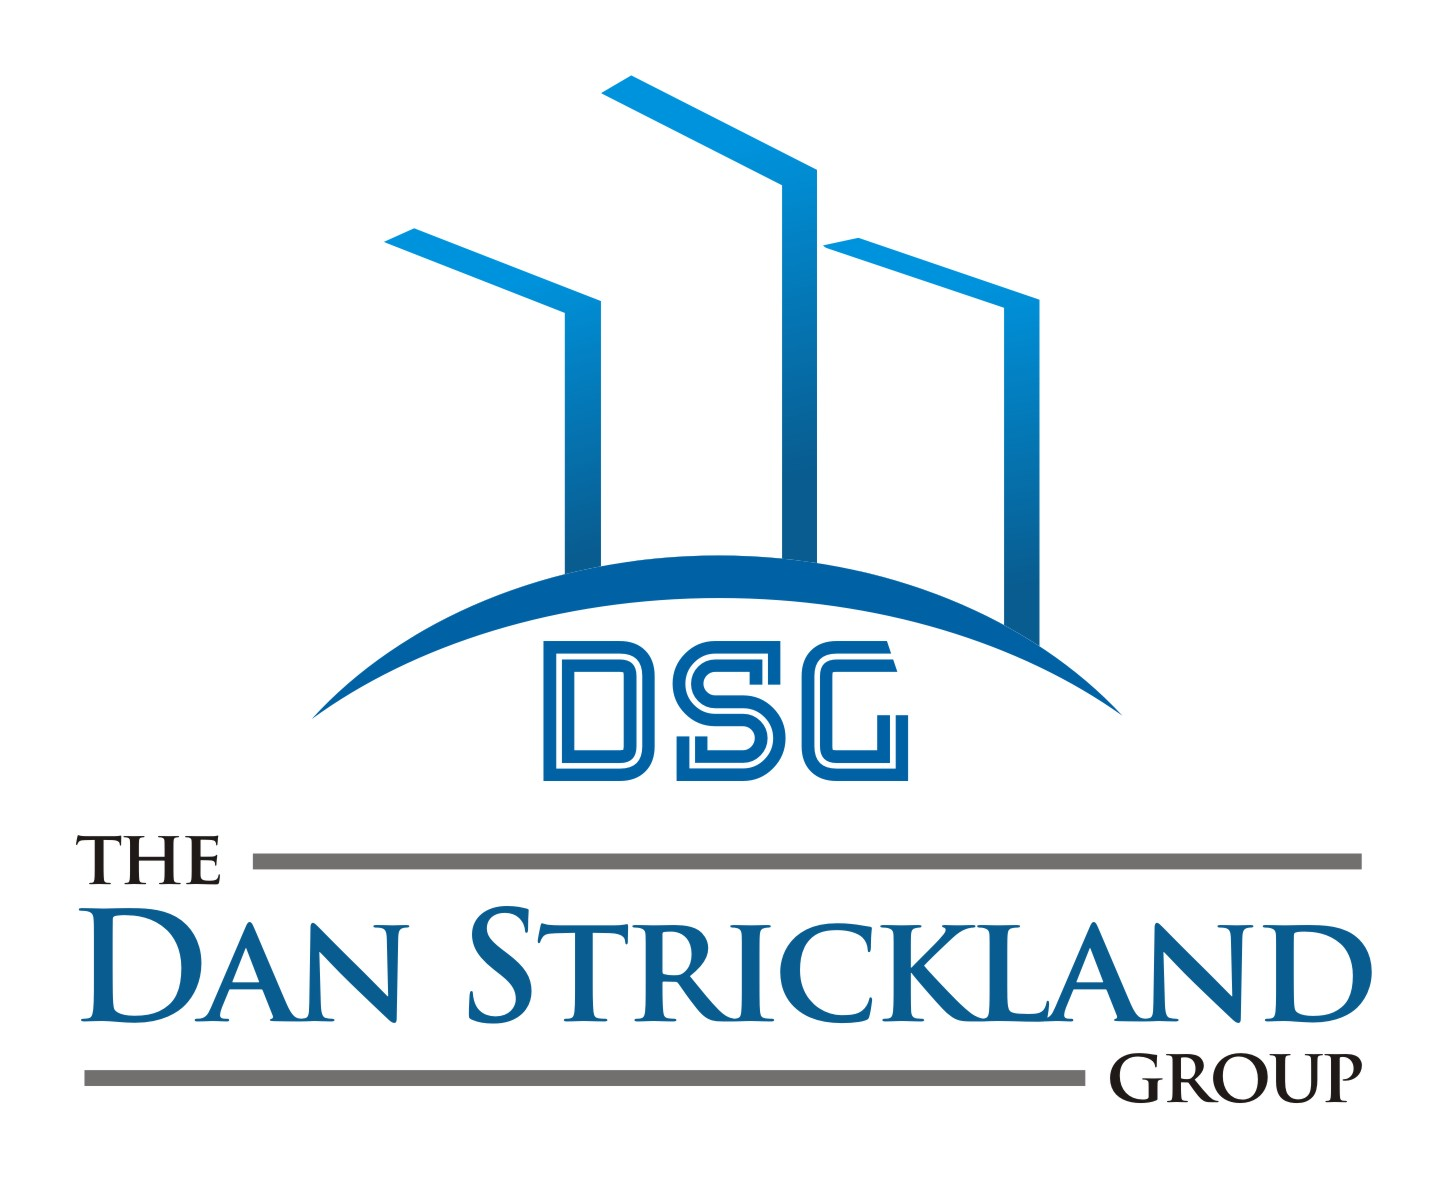 Logo Design by Arief Zuhud Romdhon - Entry No. 263 in the Logo Design Contest Creative Logo Design for The Dan Strickland Group.